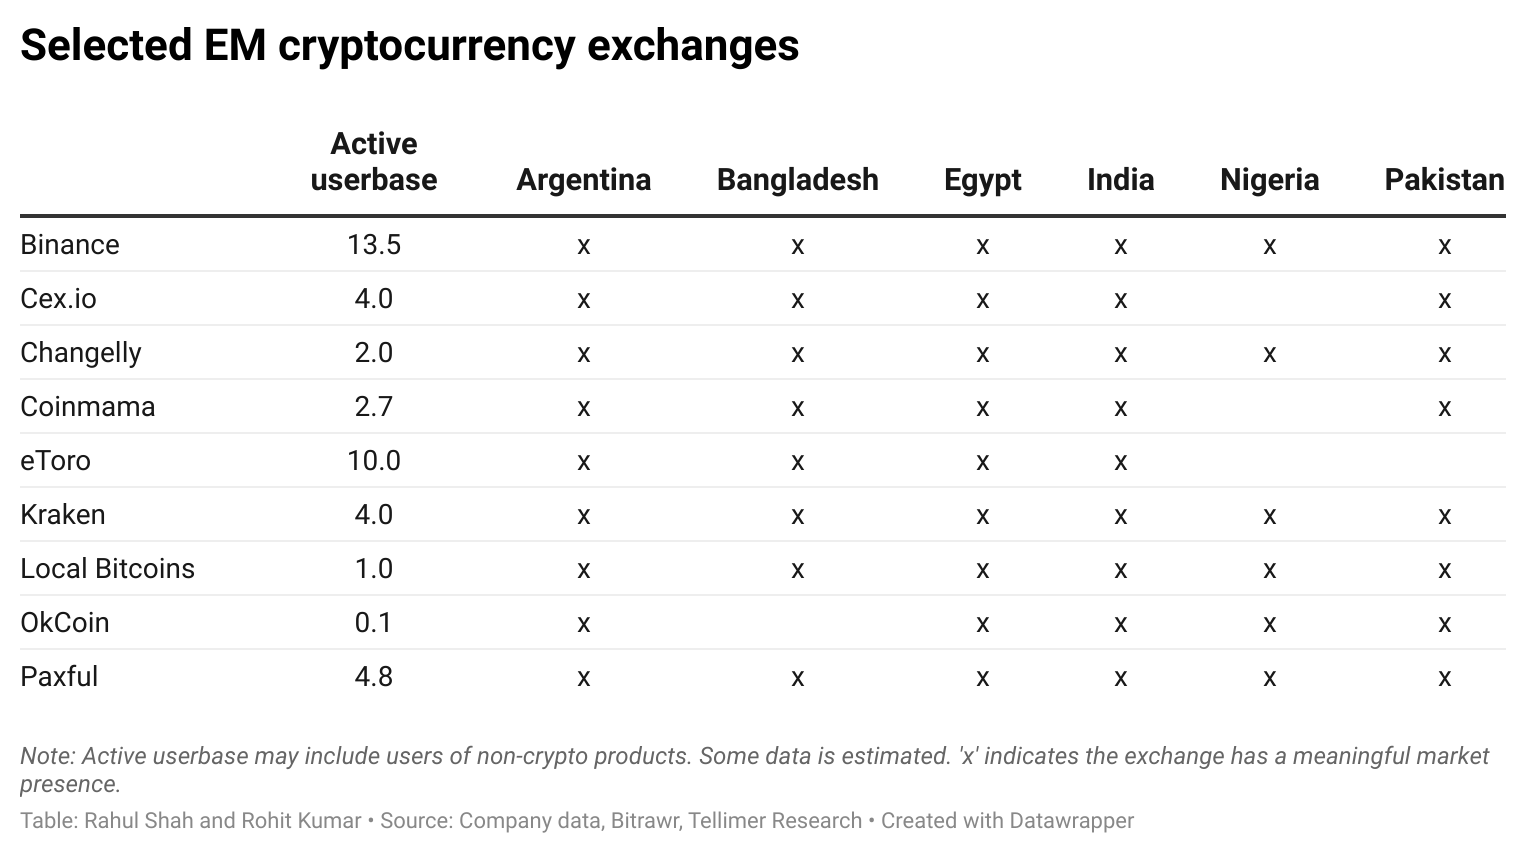 Selected EM cryptocurrency exchanges